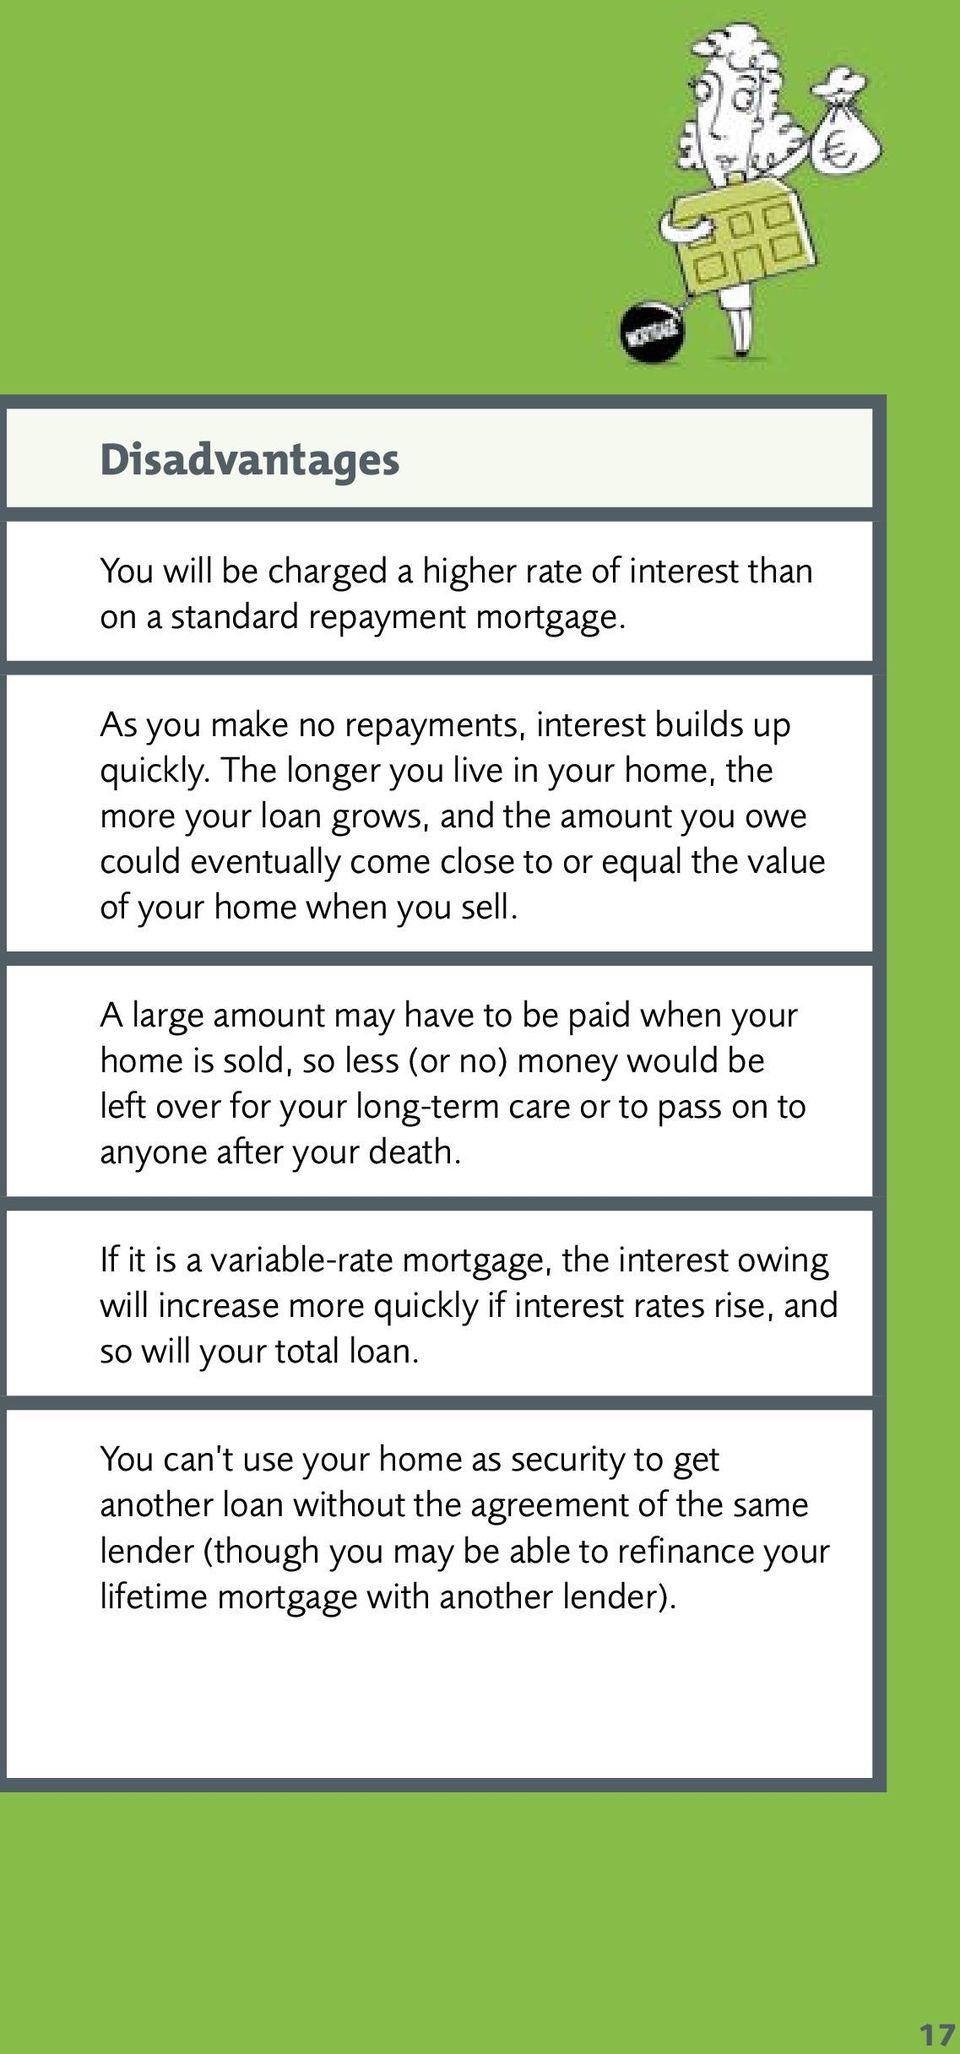 A large amount may have to be paid when your home is sold, so less (or no) money would be left over for your long-term care or to pass on to anyone after your death.